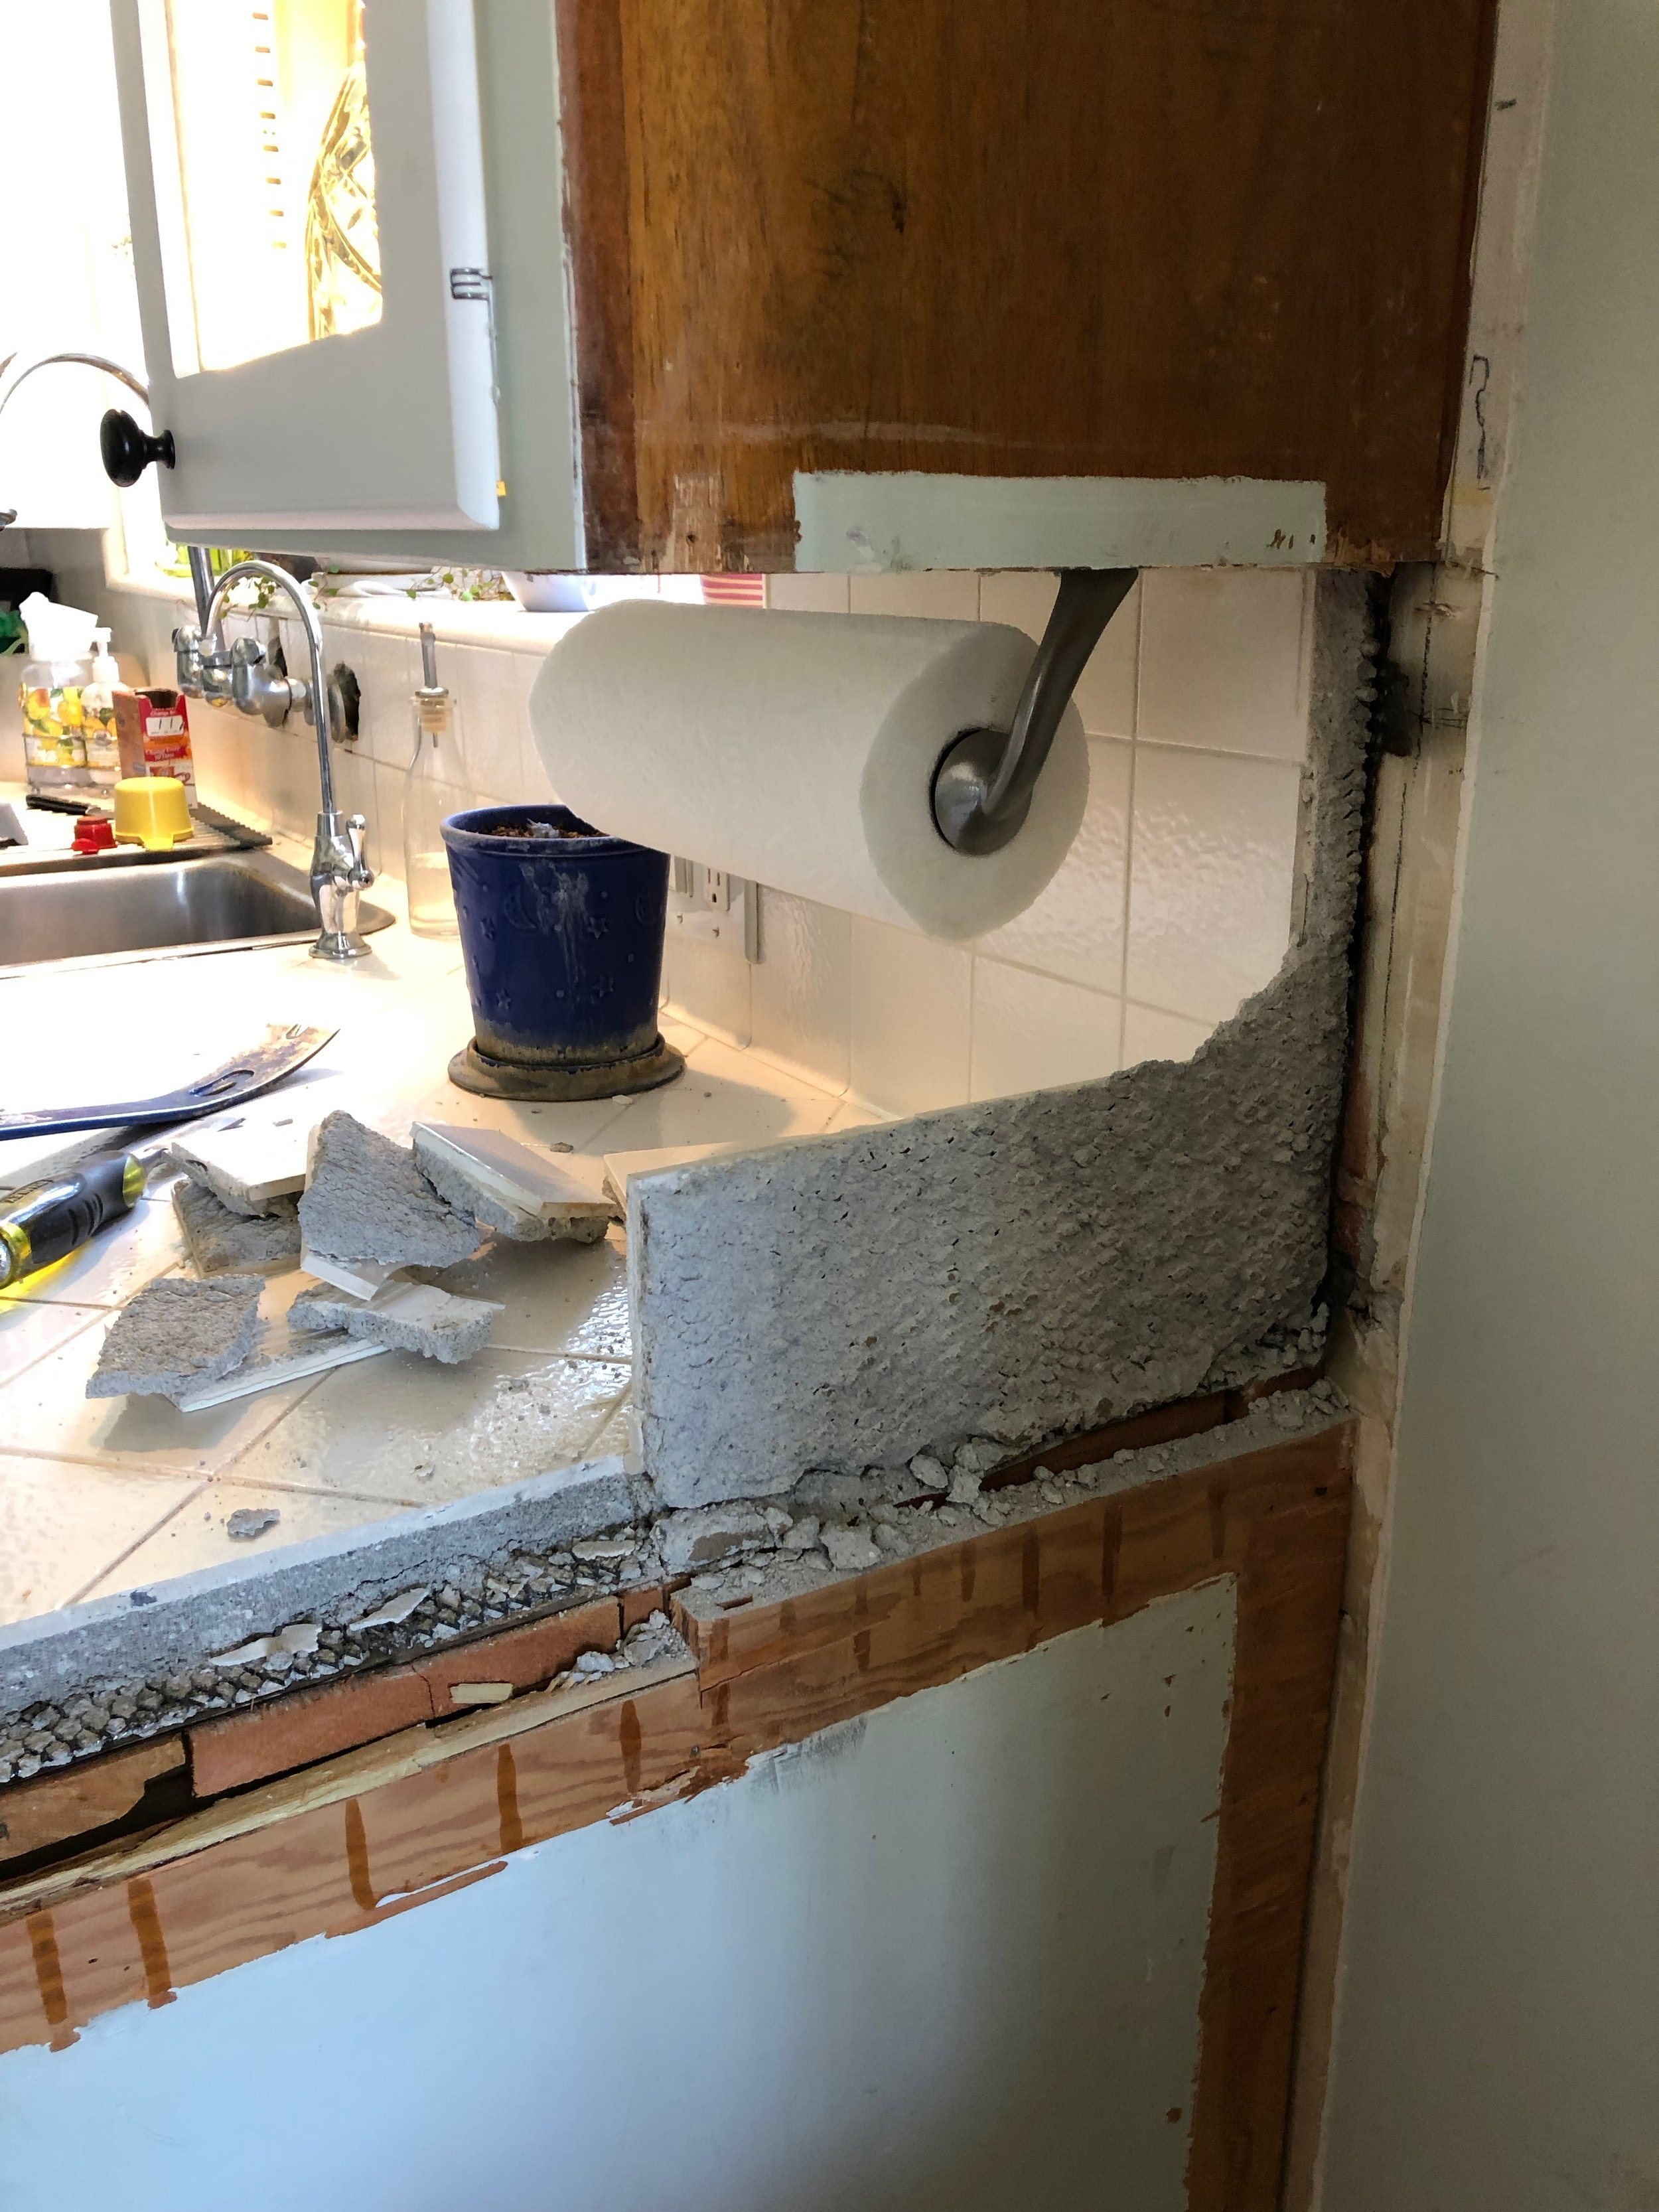 Removing the backsplash for extension of counter tops.